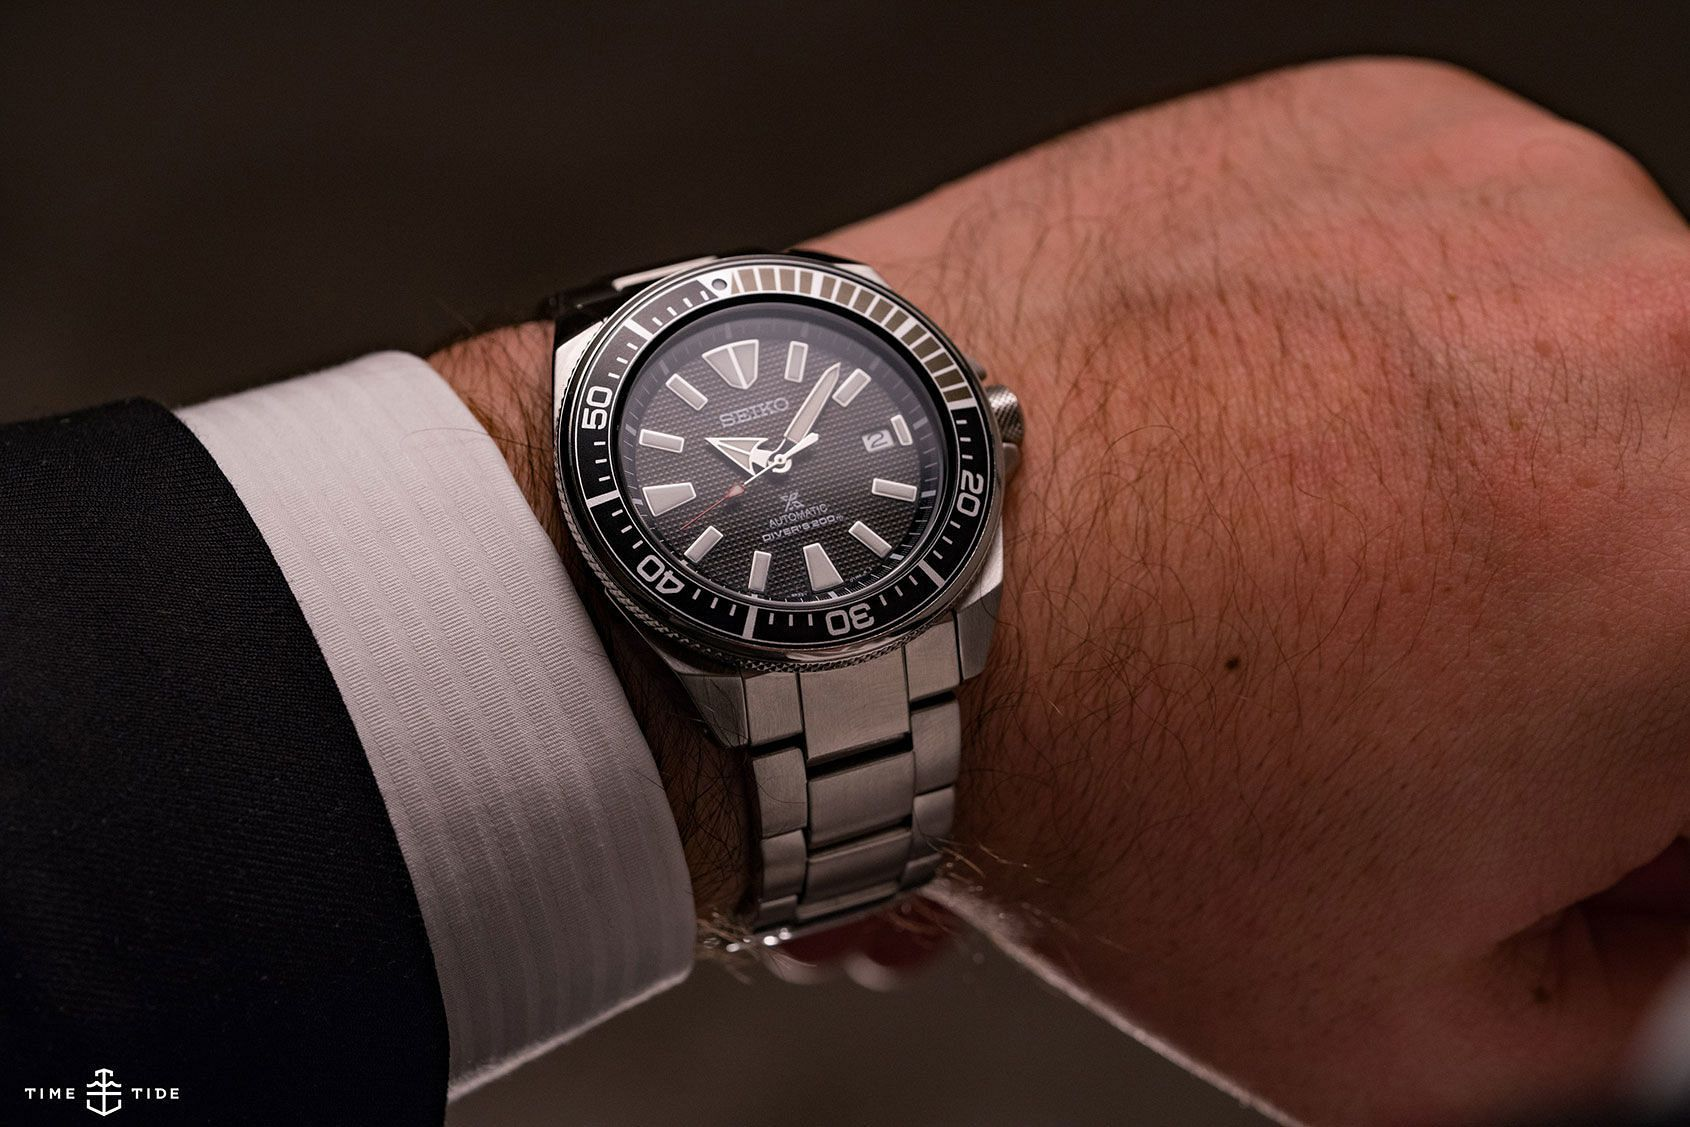 c4a2eec5876 Time to dust off your Kurosawa because the Seiko Samurai is back. We take a  look at the latest version of this cult diver.